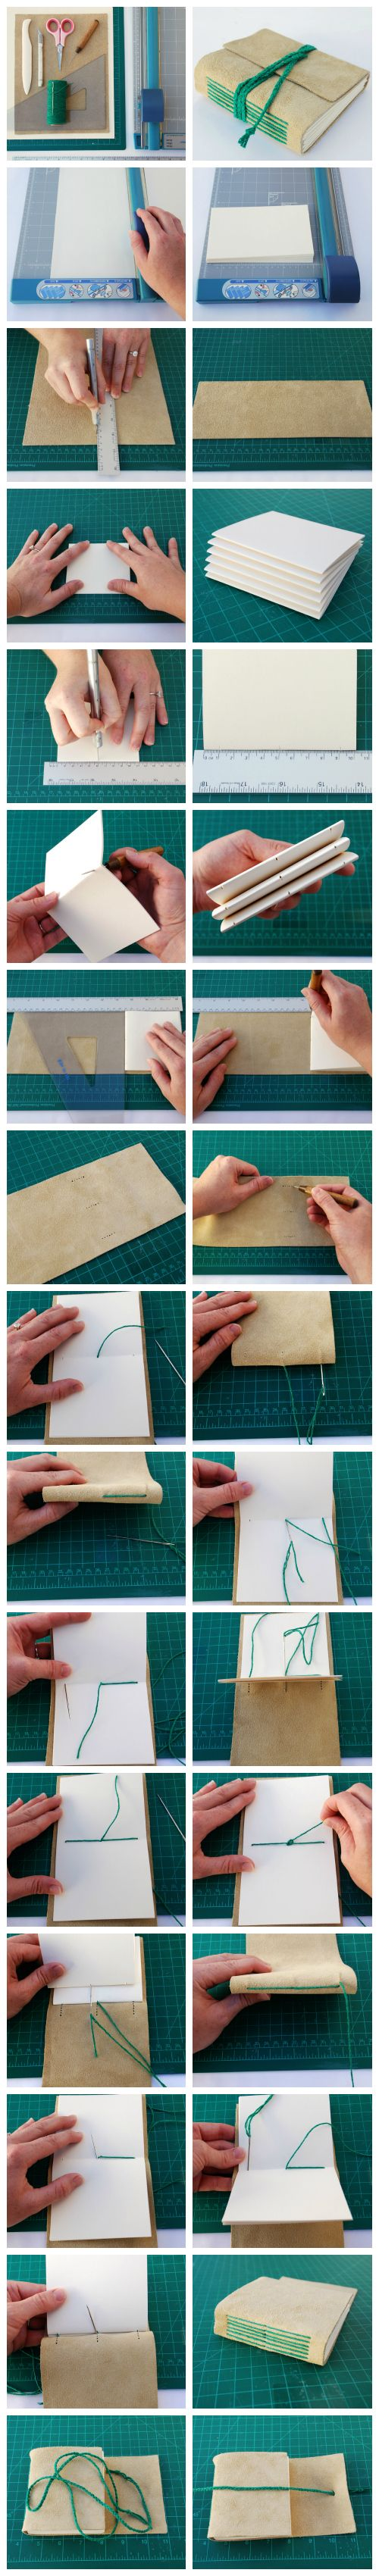 Learn how to make a long-stitch bound journal. #FreeTutorial #Bookbinding #Papercraft